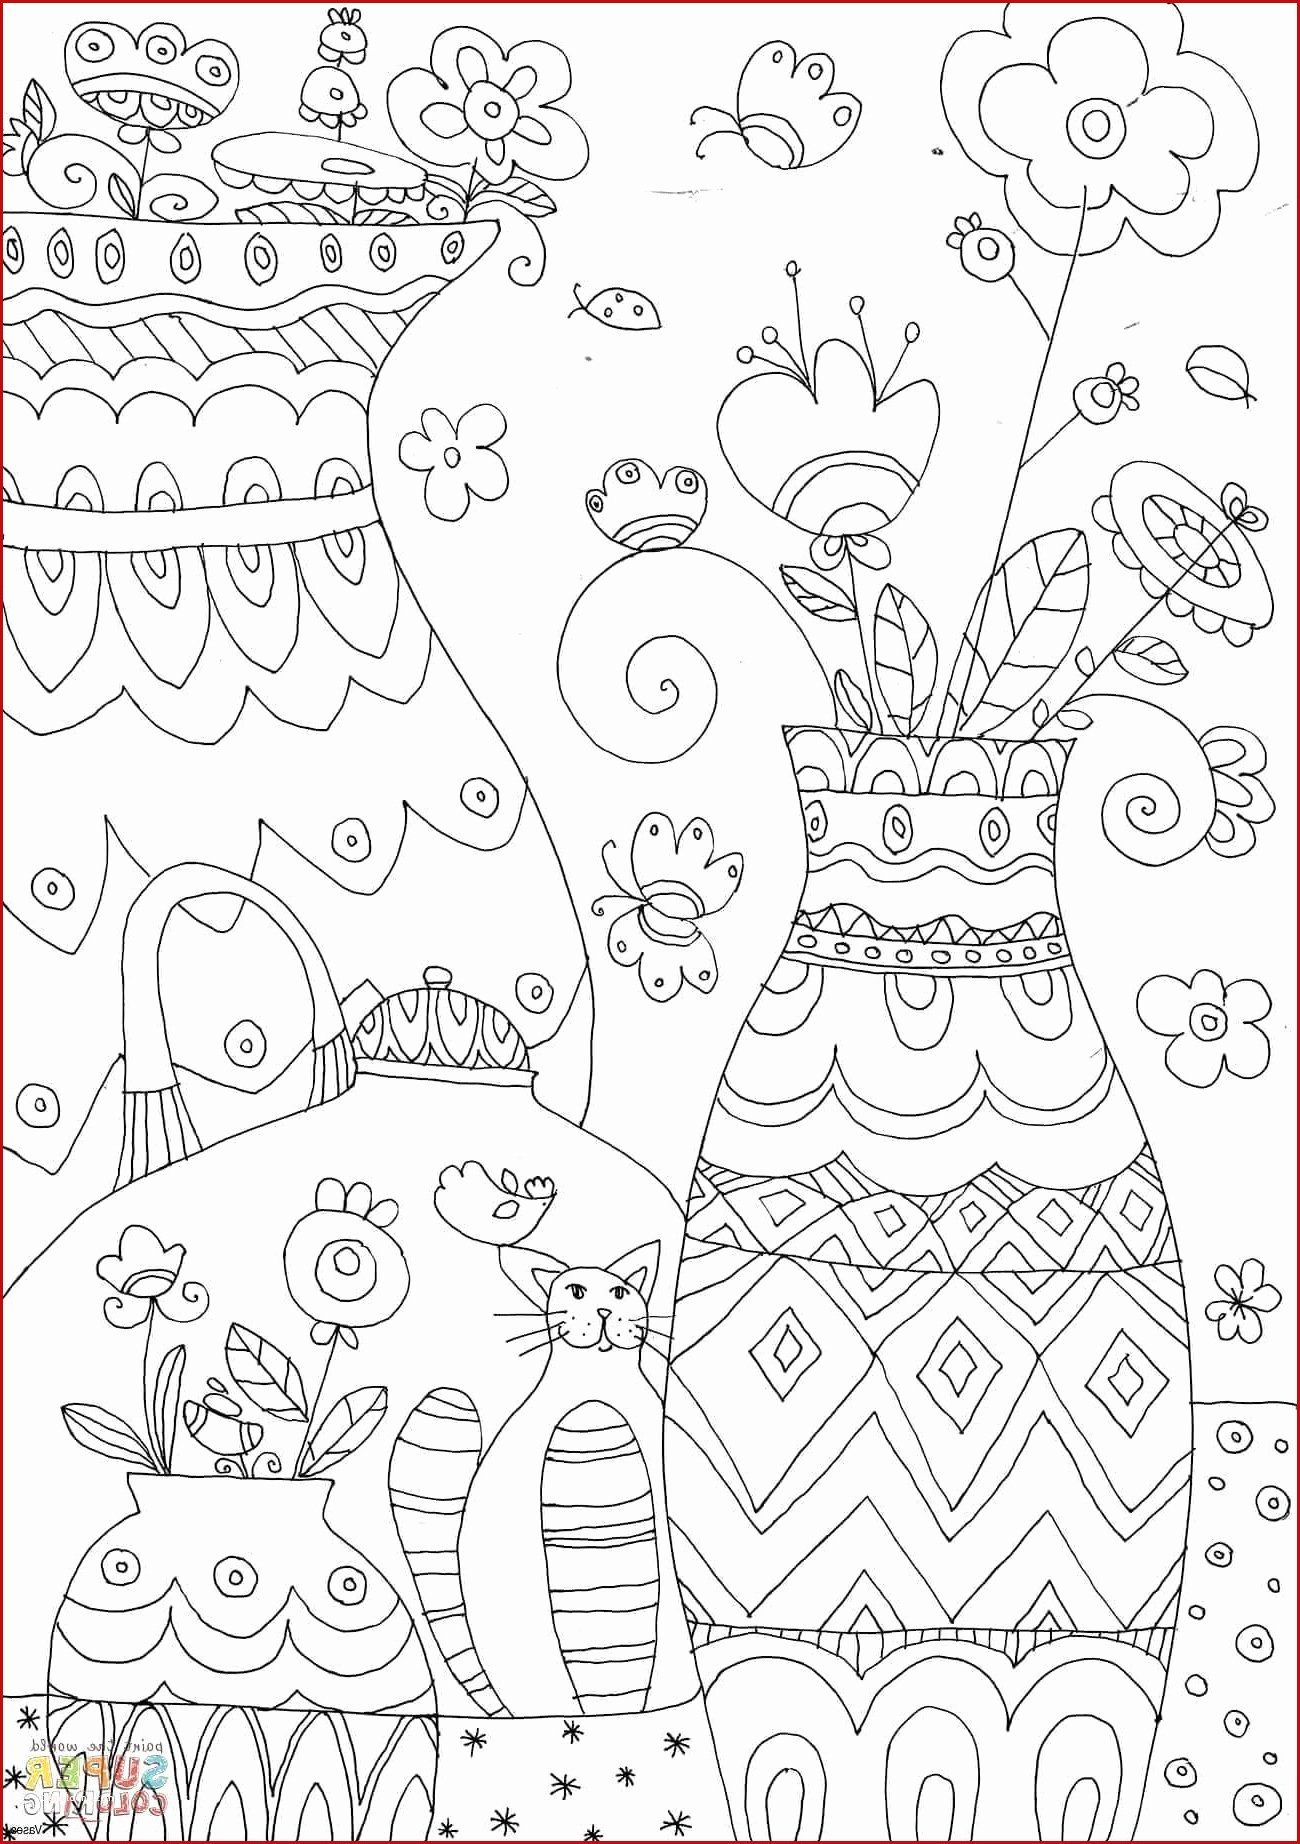 Coloring Book Flower Pictures Best Of Coloring Pages Colouring Book Flowers In 2020 Zebra Coloring Pages Easy Coloring Pages Santa Coloring Pages